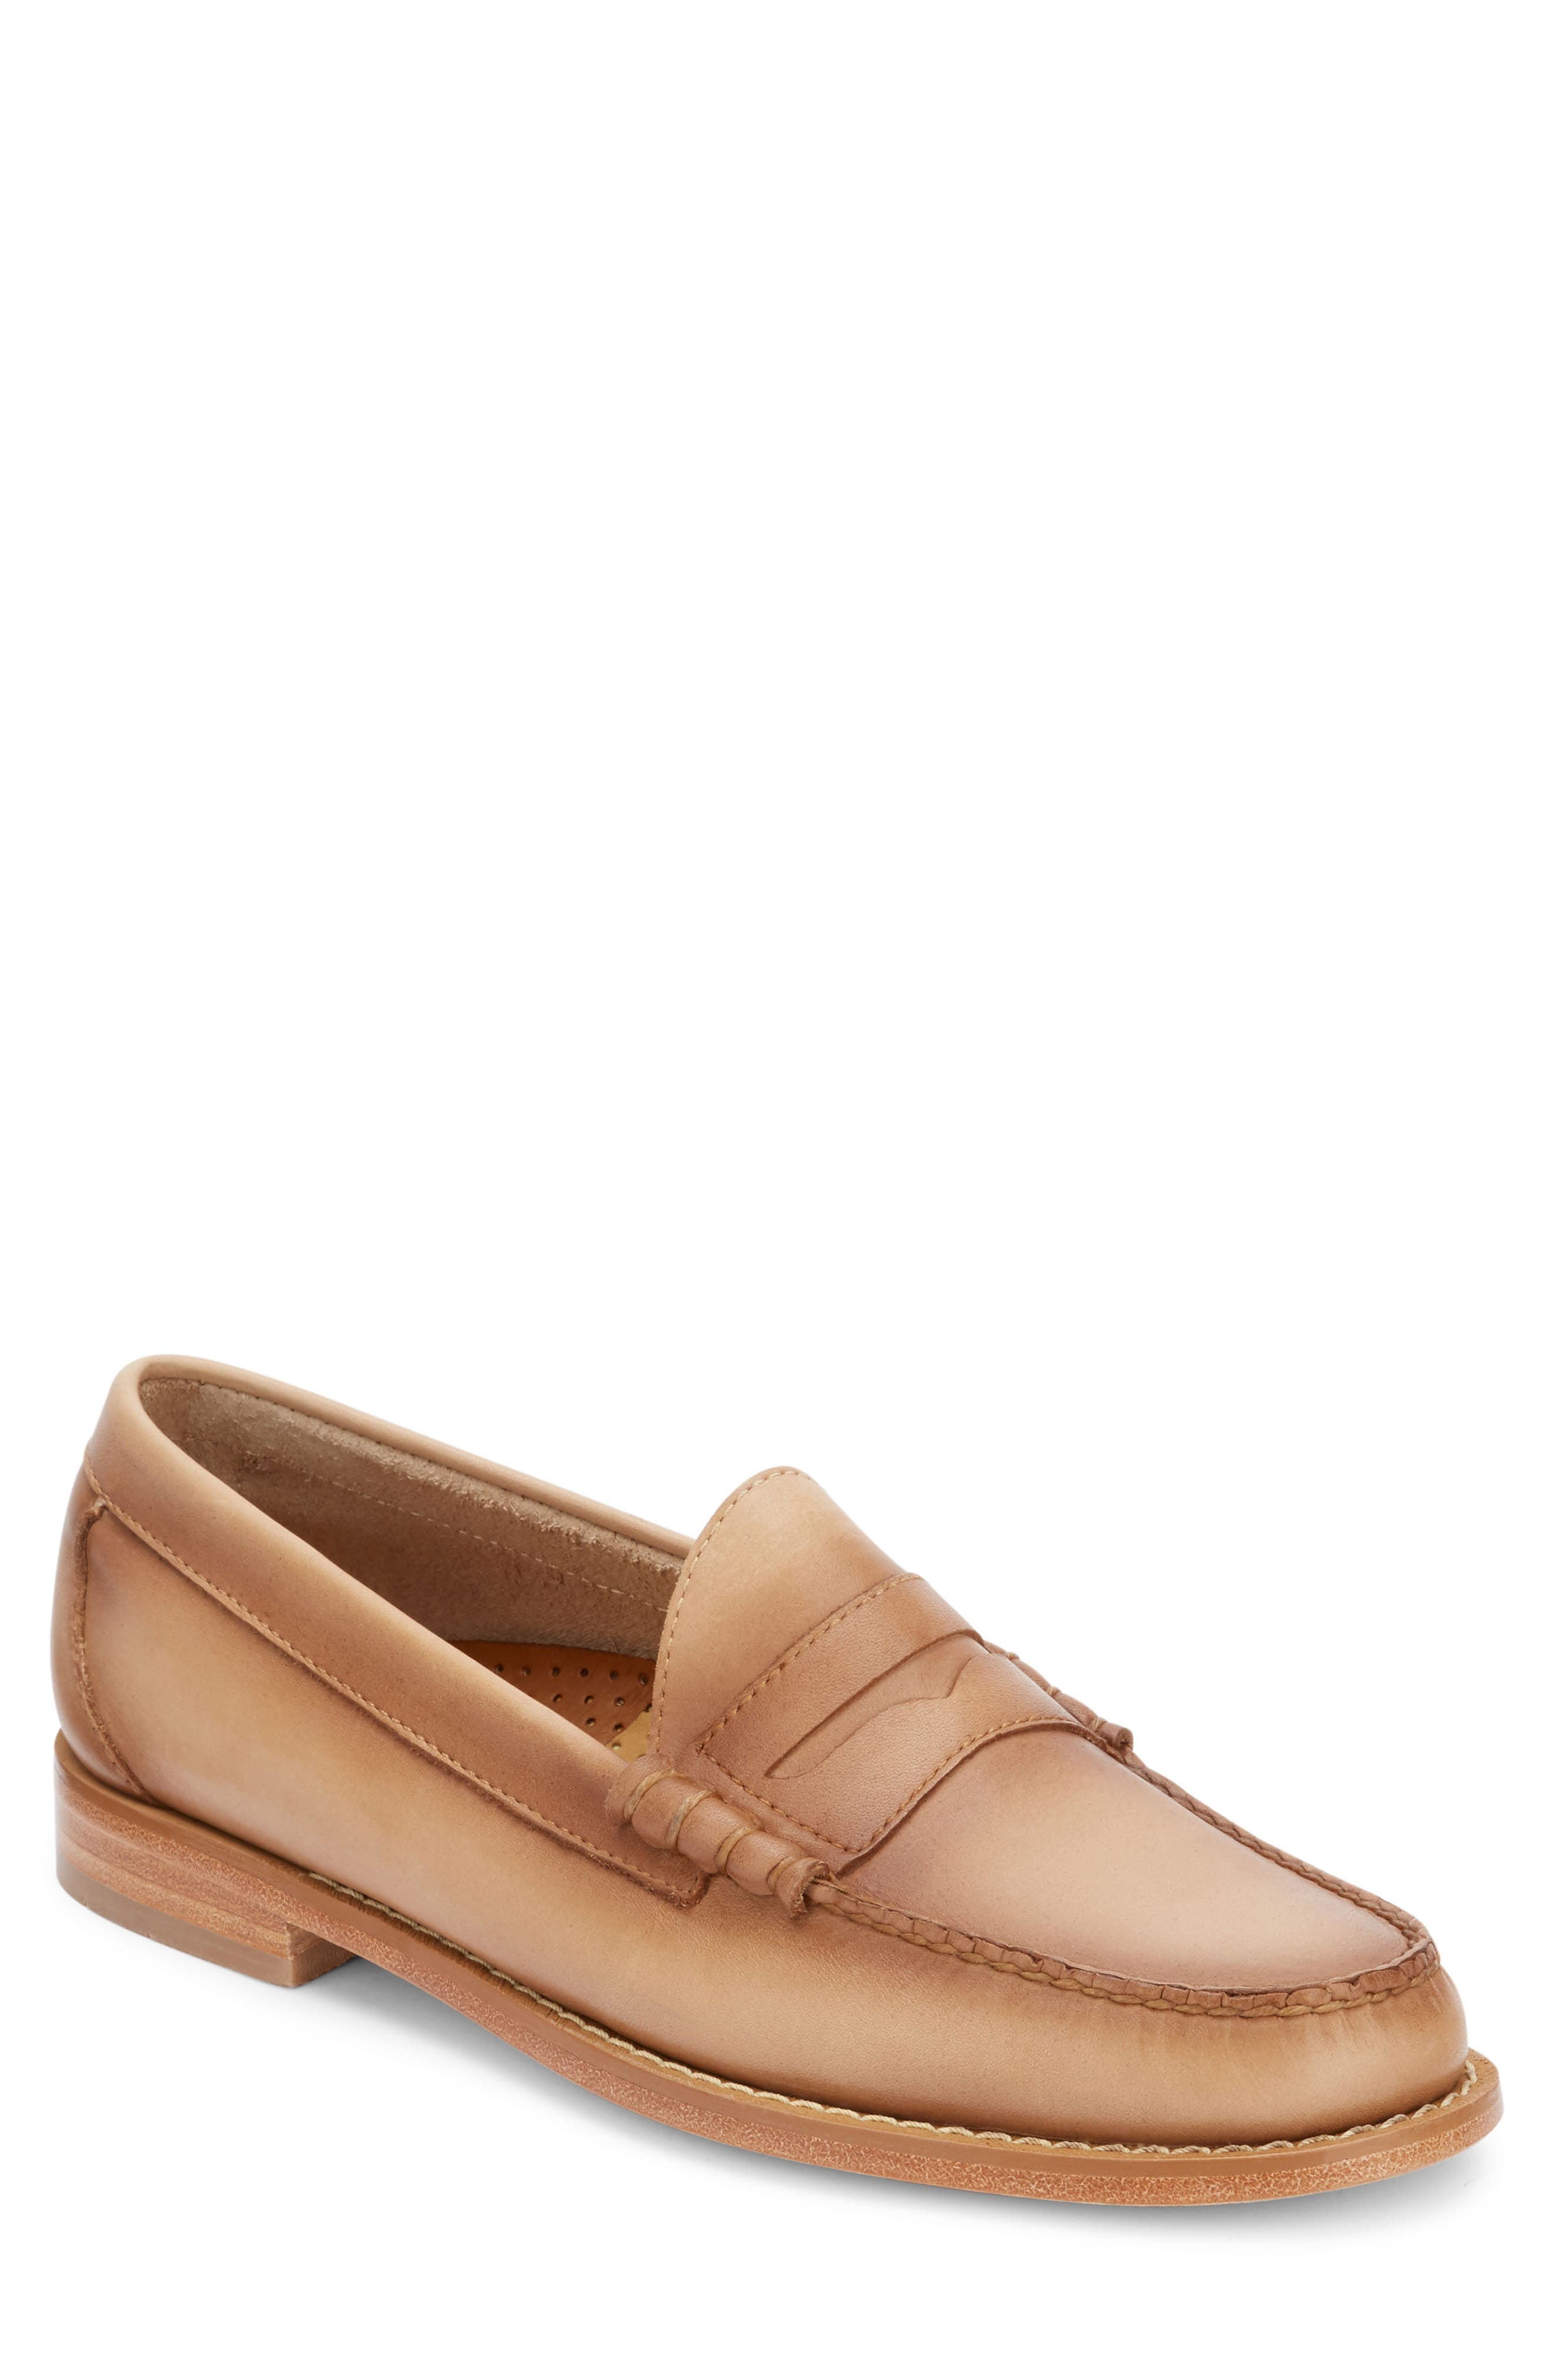 'Larson - Weejuns' Penny Loafer,                         Main,                         color, VACHETTA LEATHER